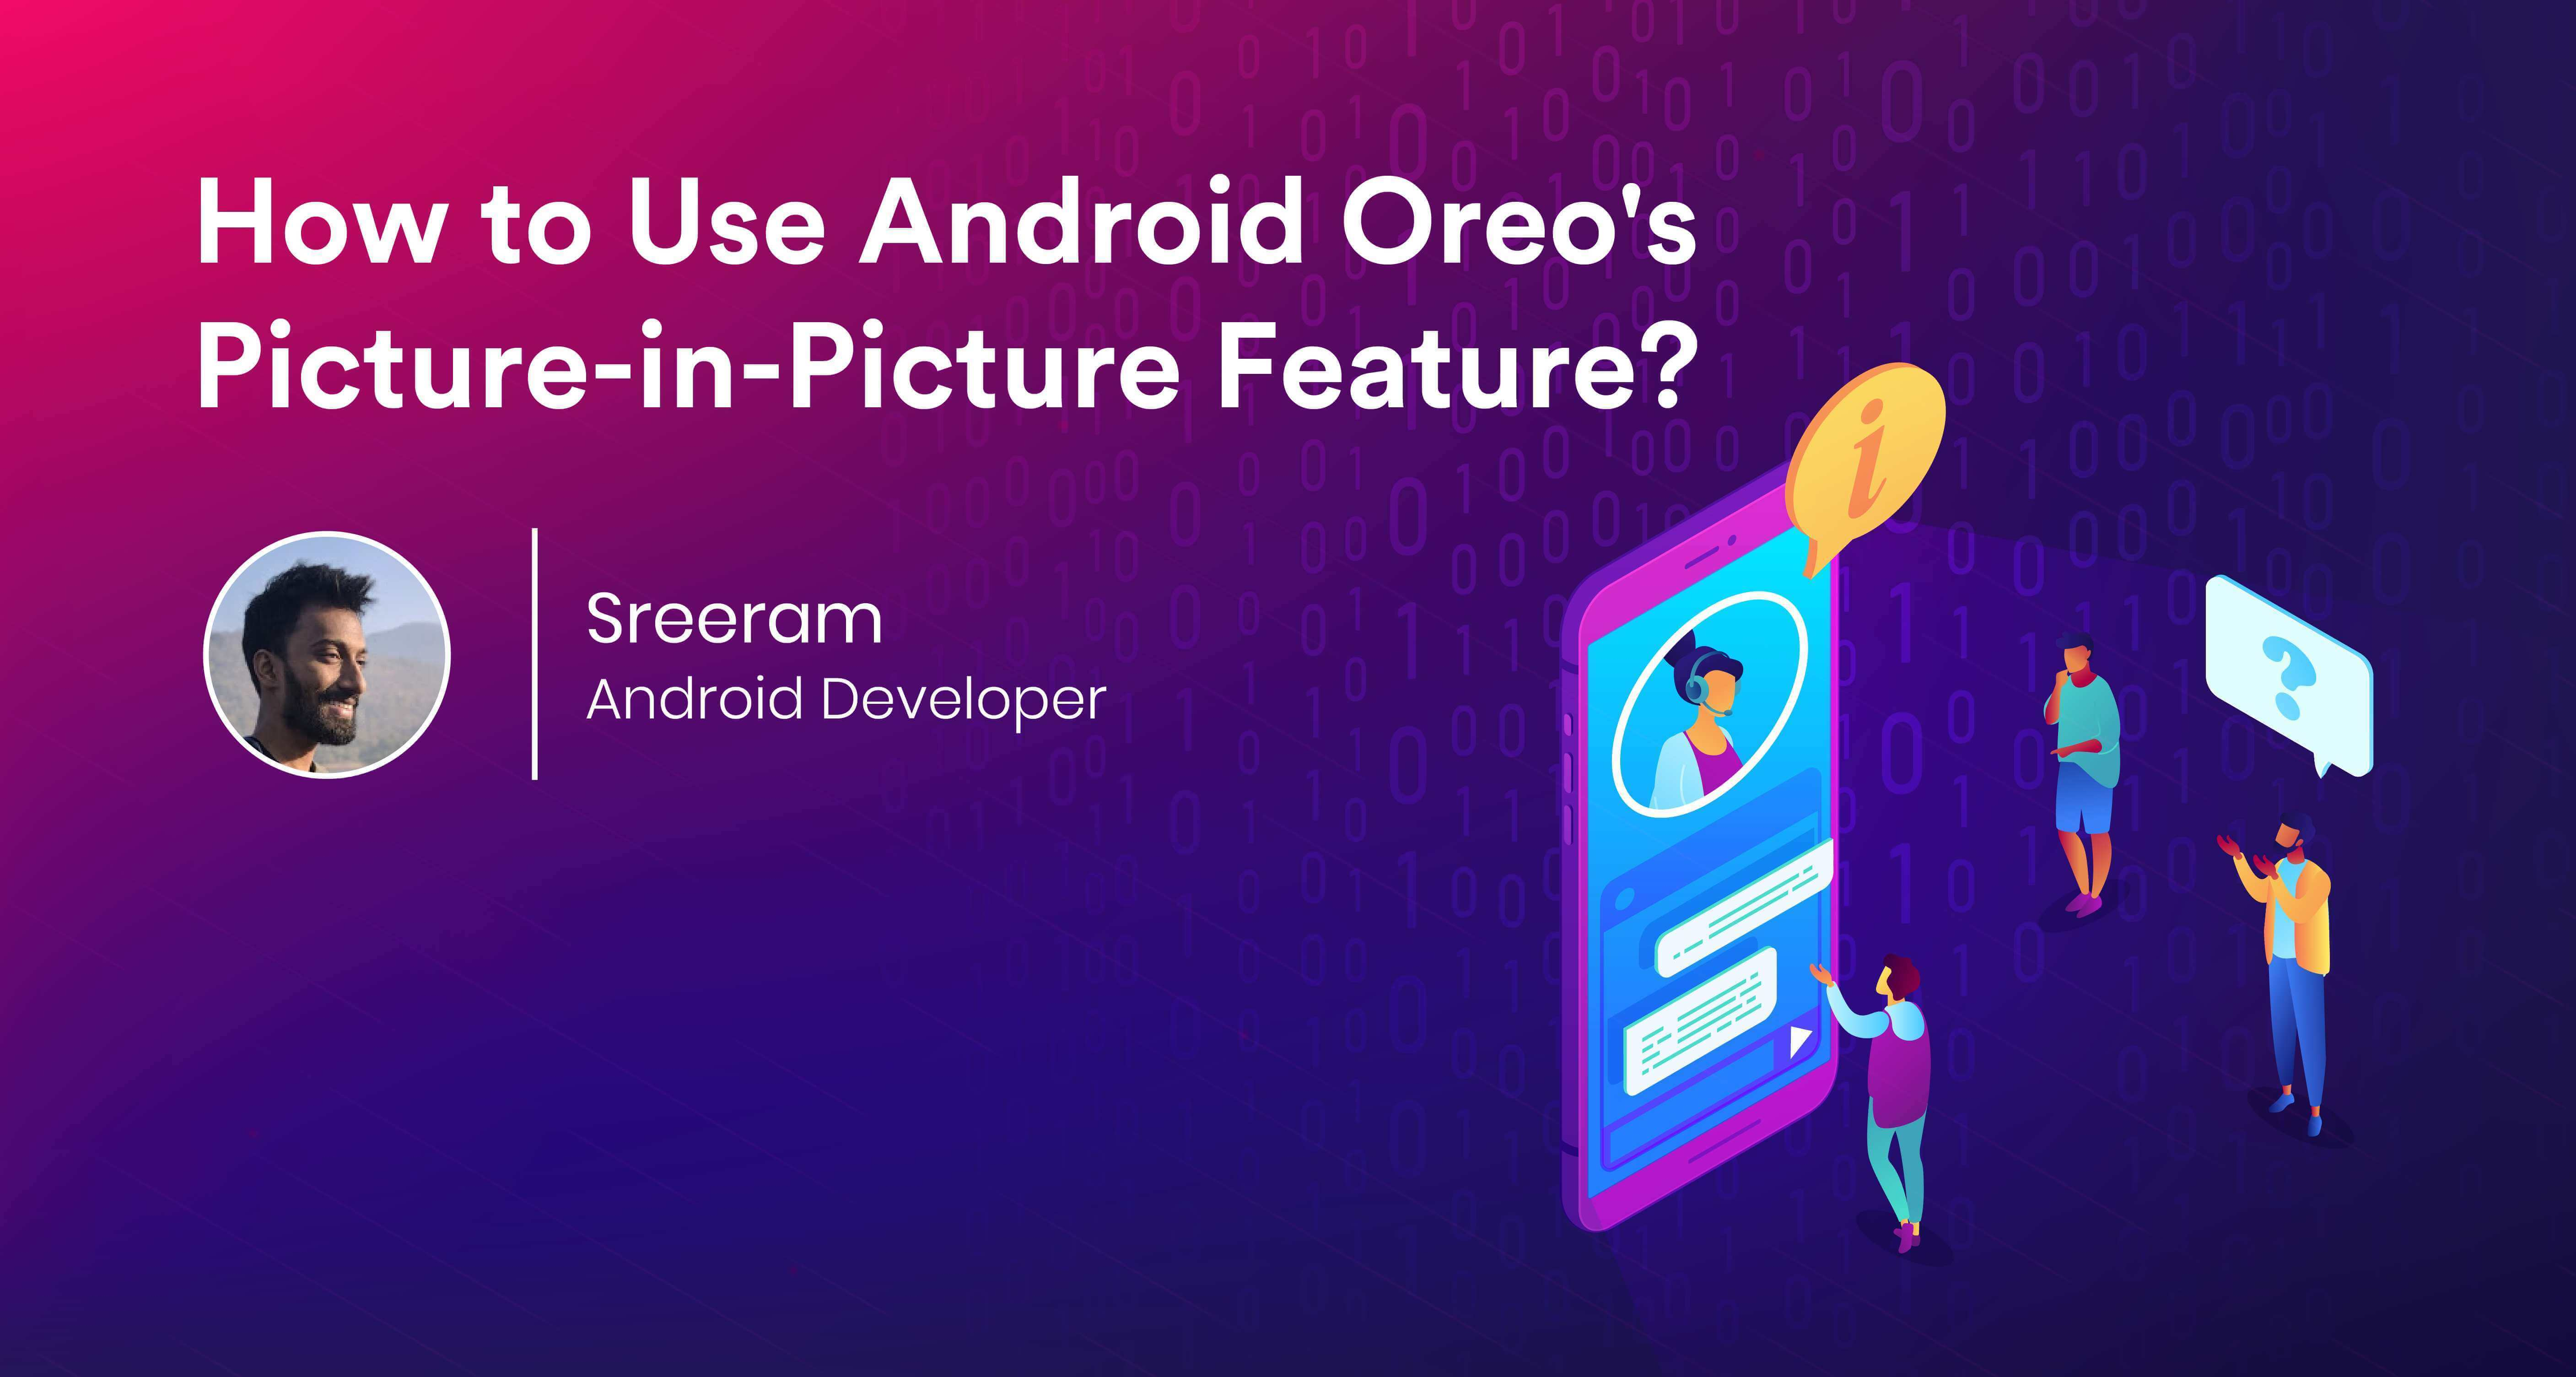 How to Use Android Oreo's Picture-in-Picture Feature